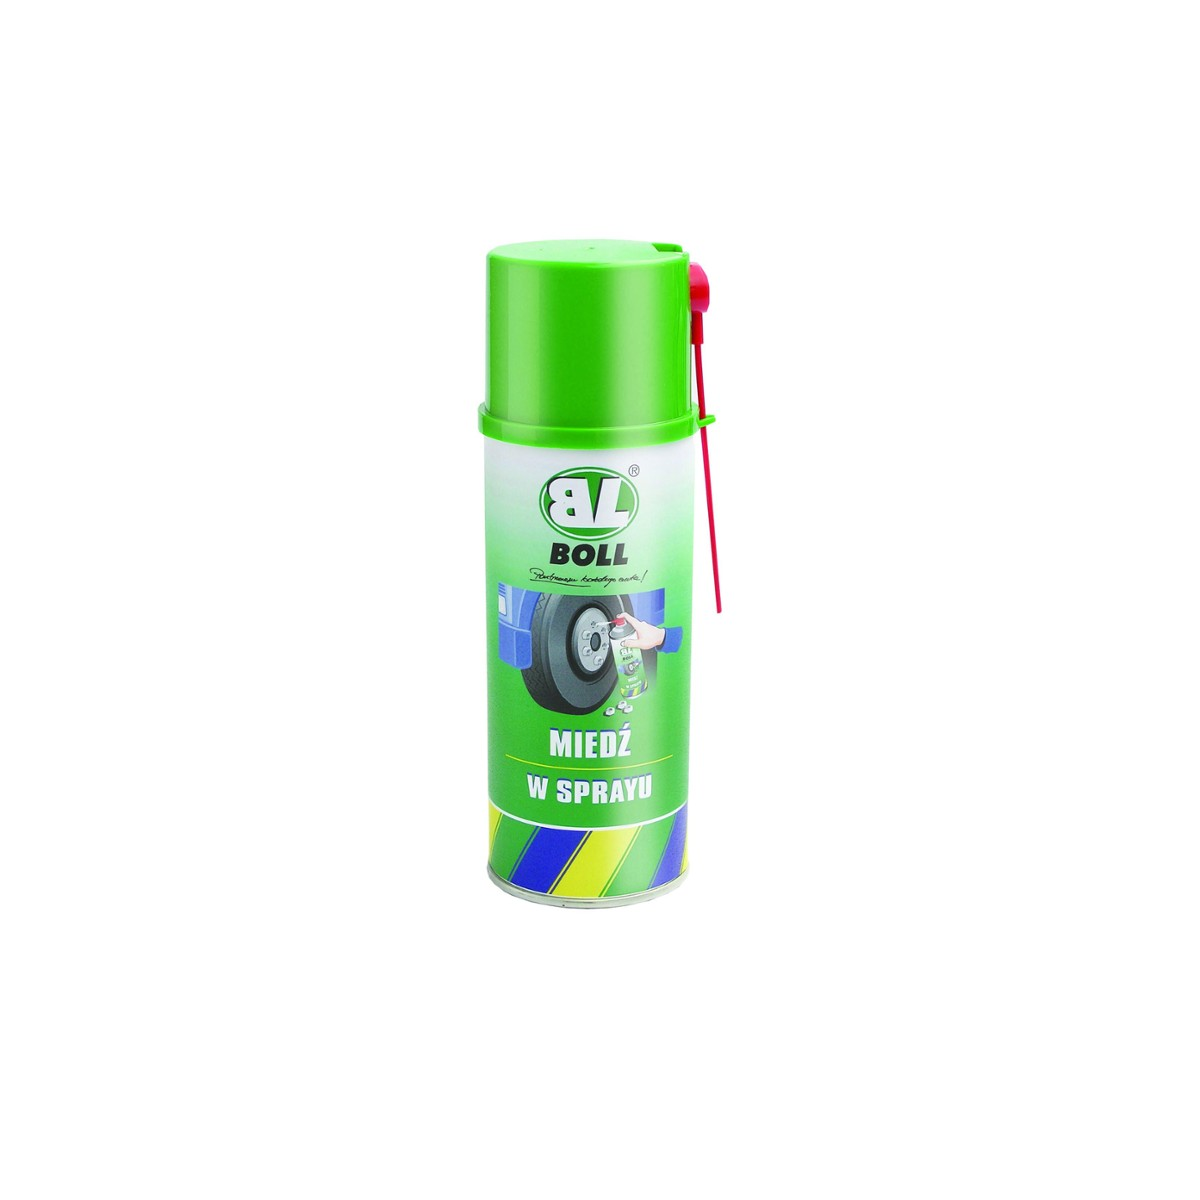 BOLL miedź - spray 400ml